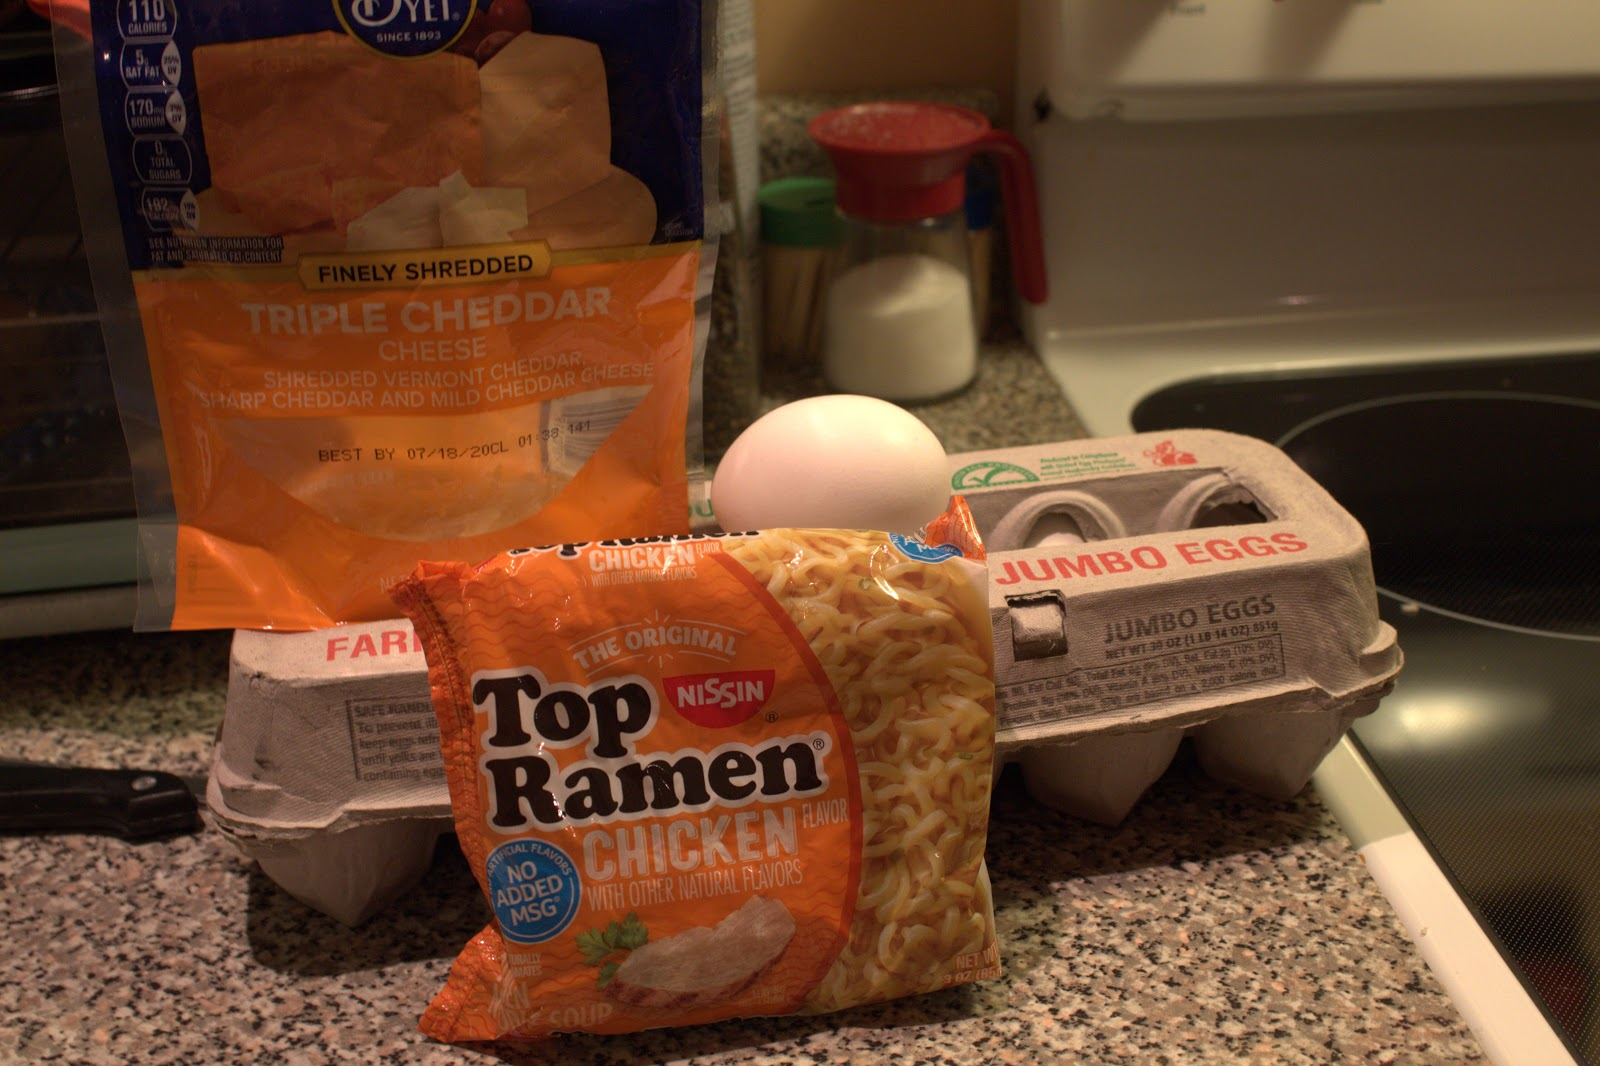 The ingredients needed for the egg noodles. Photo by Jessica Collins.